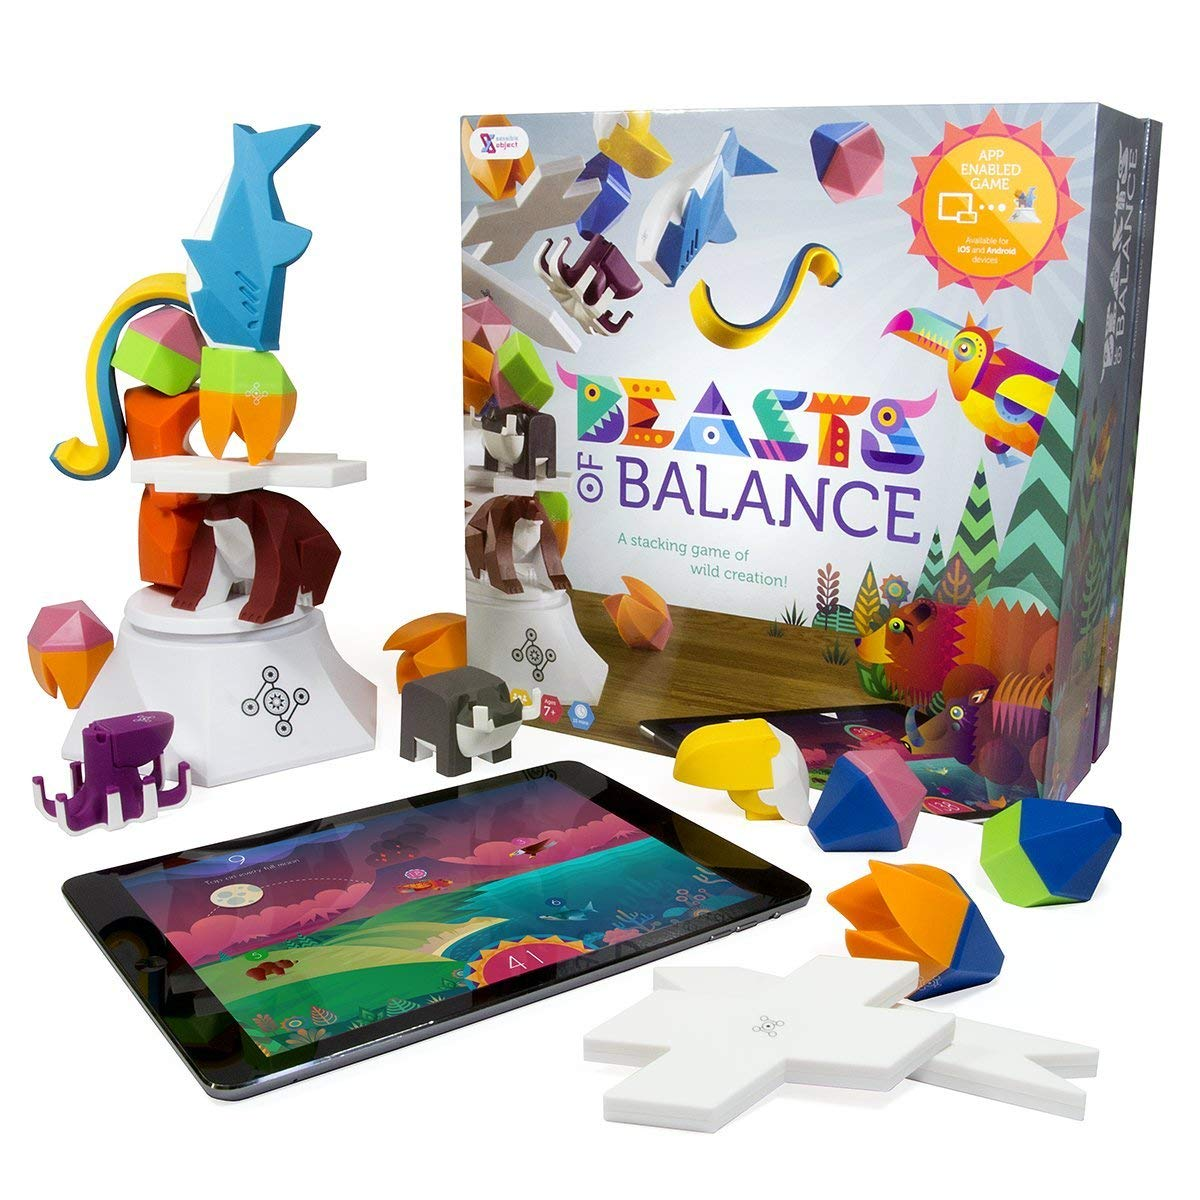 Beasts of Balance digital tabletop hybrid stacking family game 25 PCS